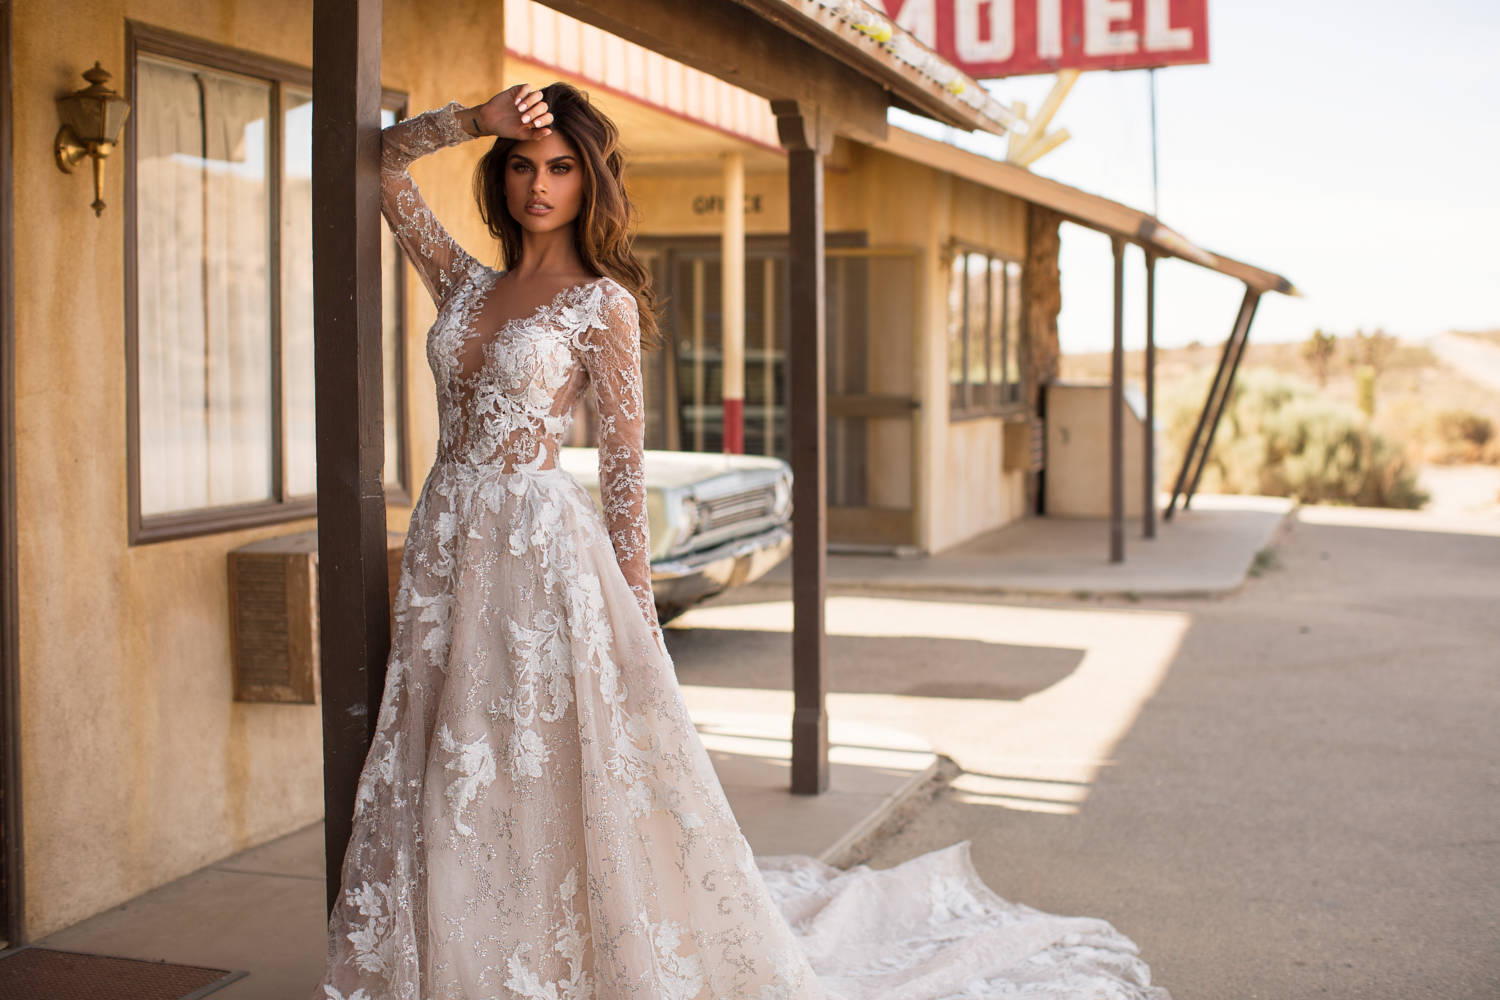 Blushing Bridal Boutique ,MillaNova, Softy, California Dreaming, New Collection 2019 ,wedding-wedding gown-Mississauga-woodbridge-vaughan-toronto-gta-ontario-canada-montreal-buffalo-NYC-california